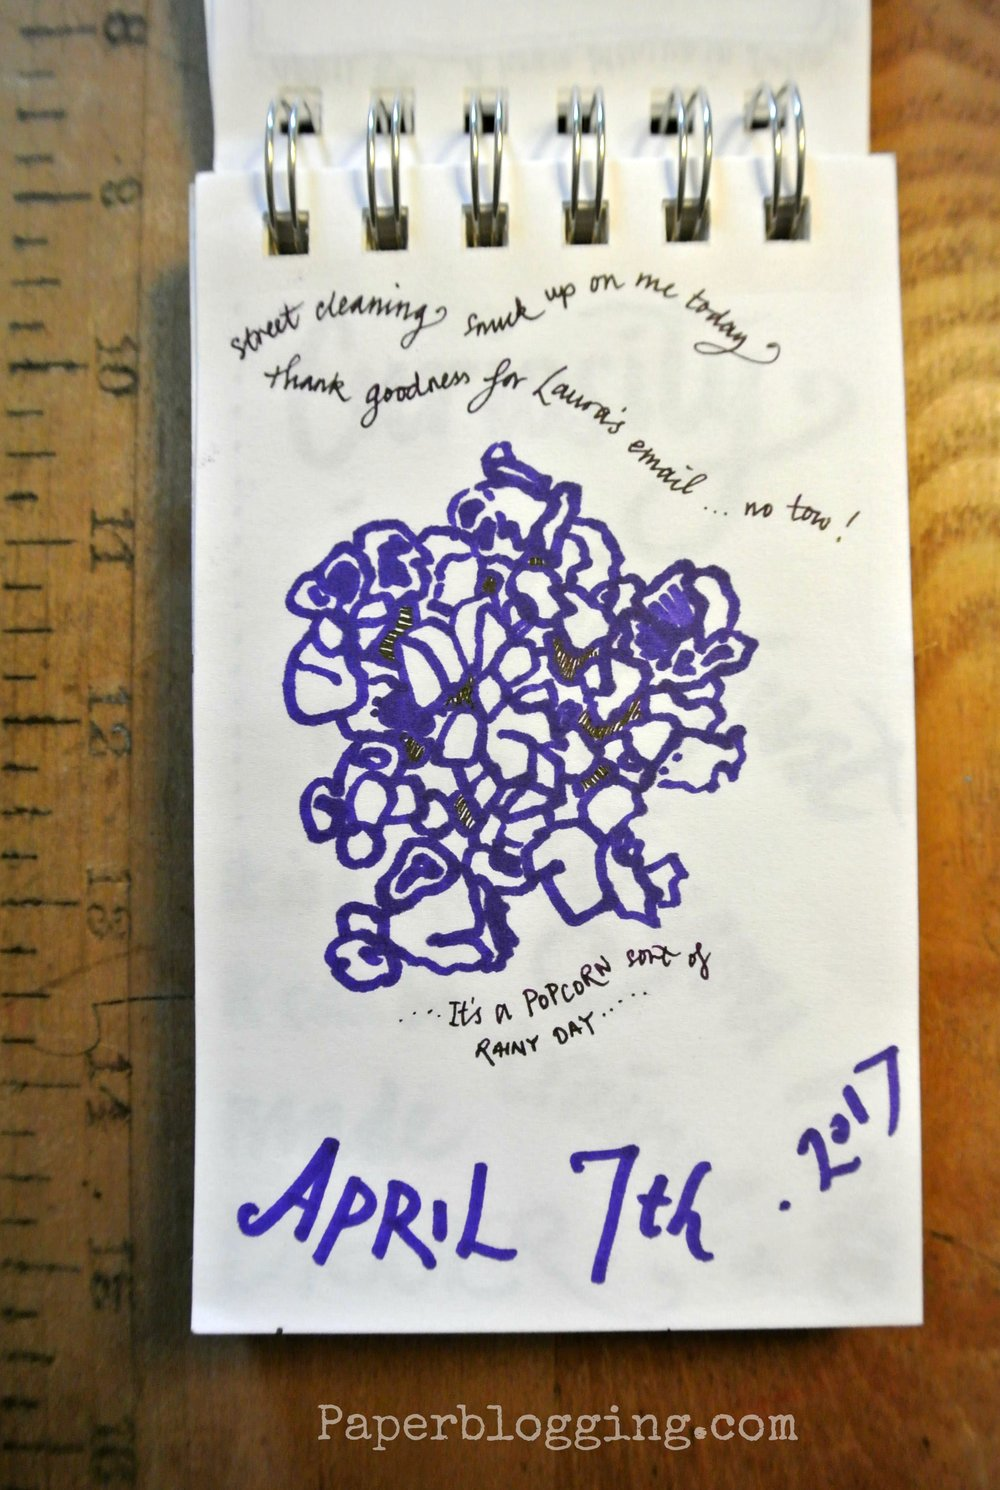 Strathmore Tiny Book: 2 minutes! Purple Sharpie and dark lilac Lamy ink in a Pilot Metropolitan pen